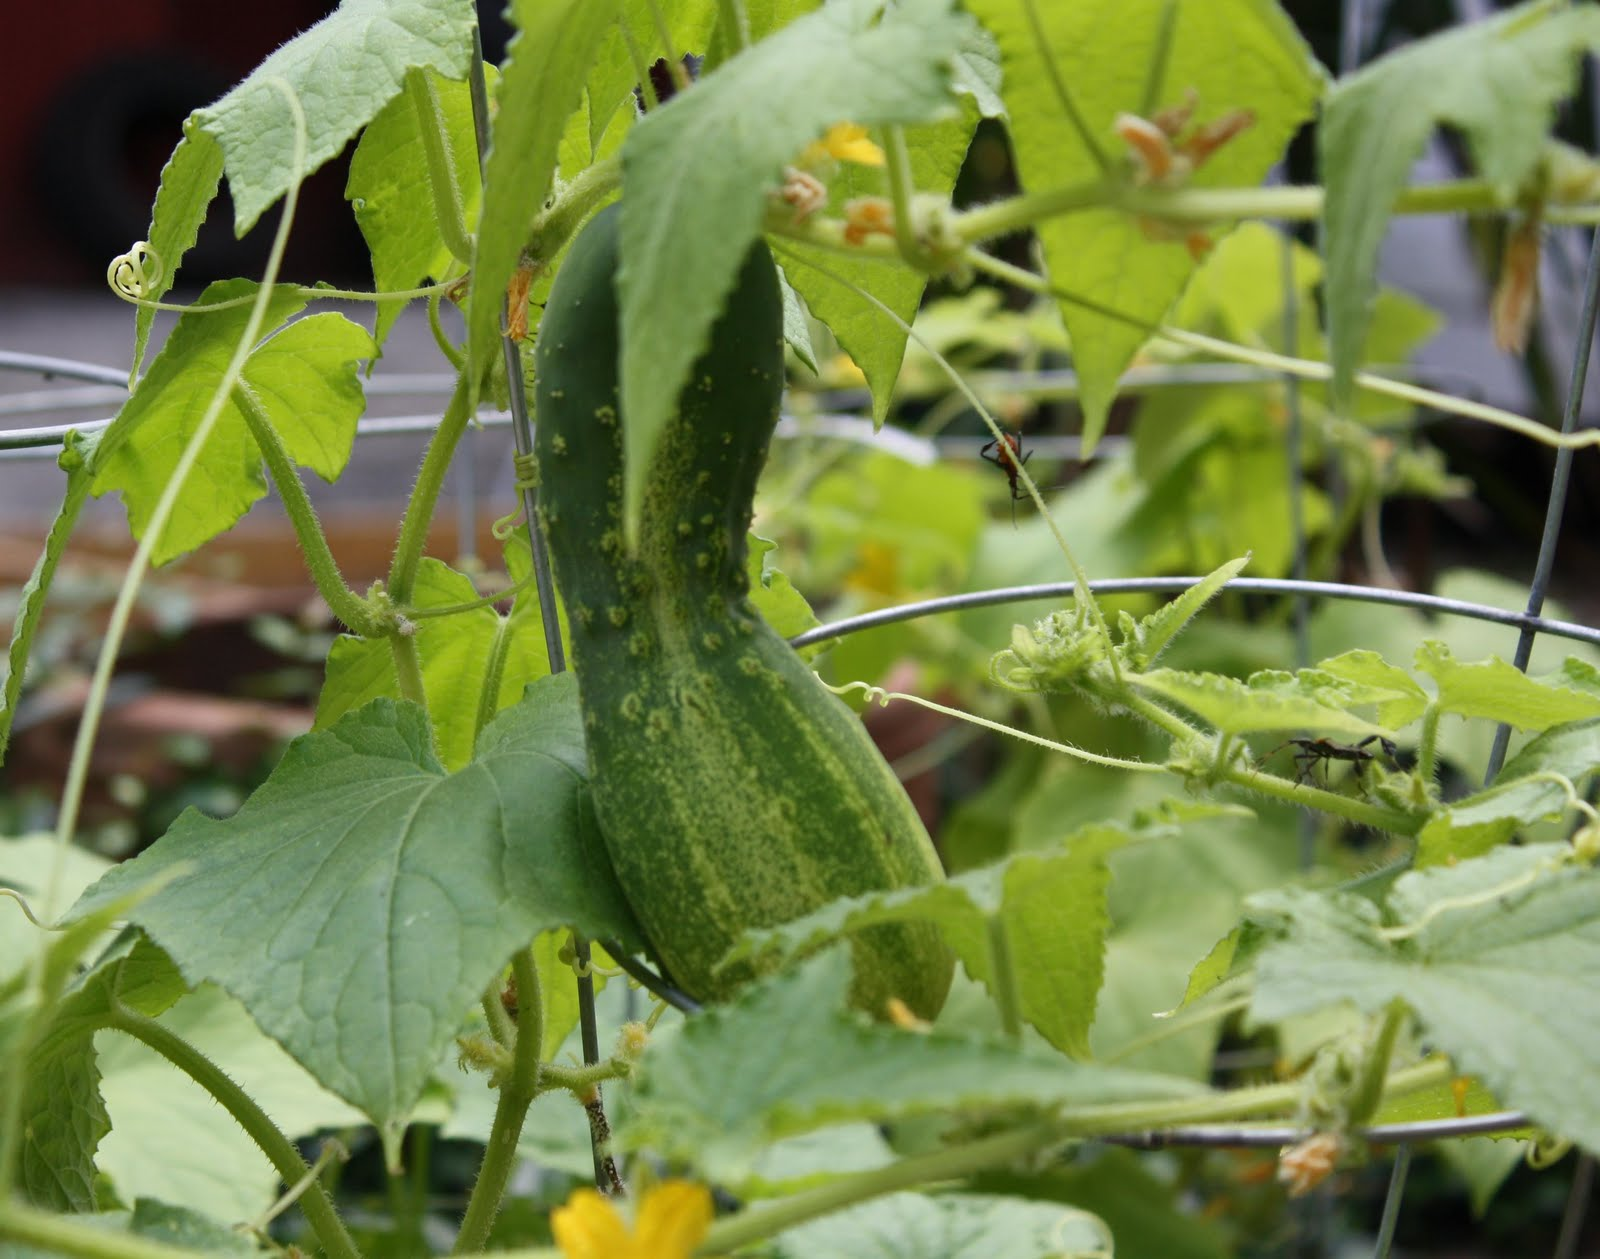 in assholes Cucumbers